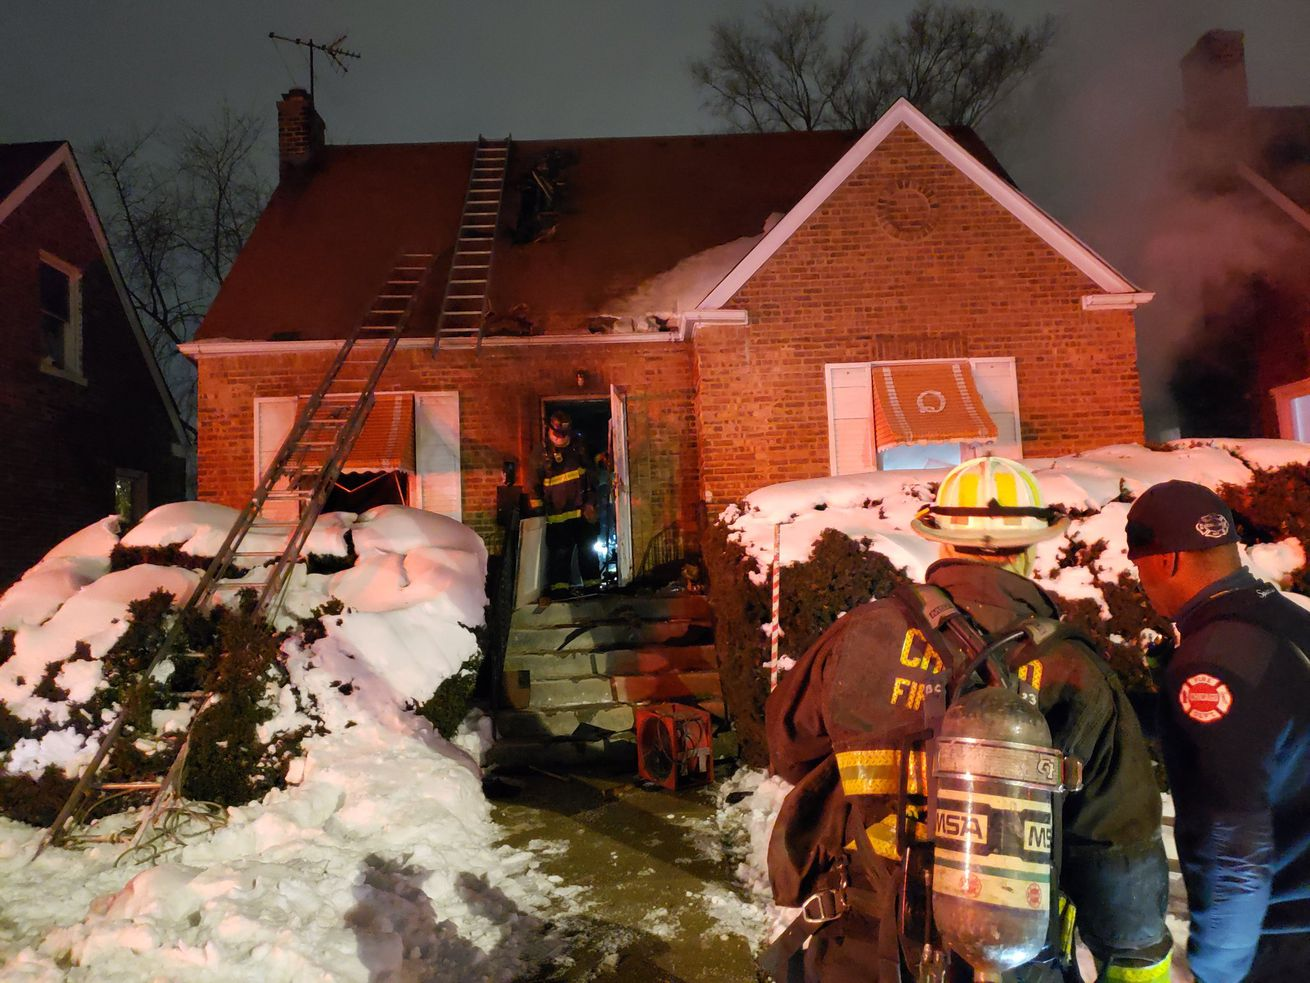 Firefighters at the scene of a fire Feb. 3, 2021, in South Deering.